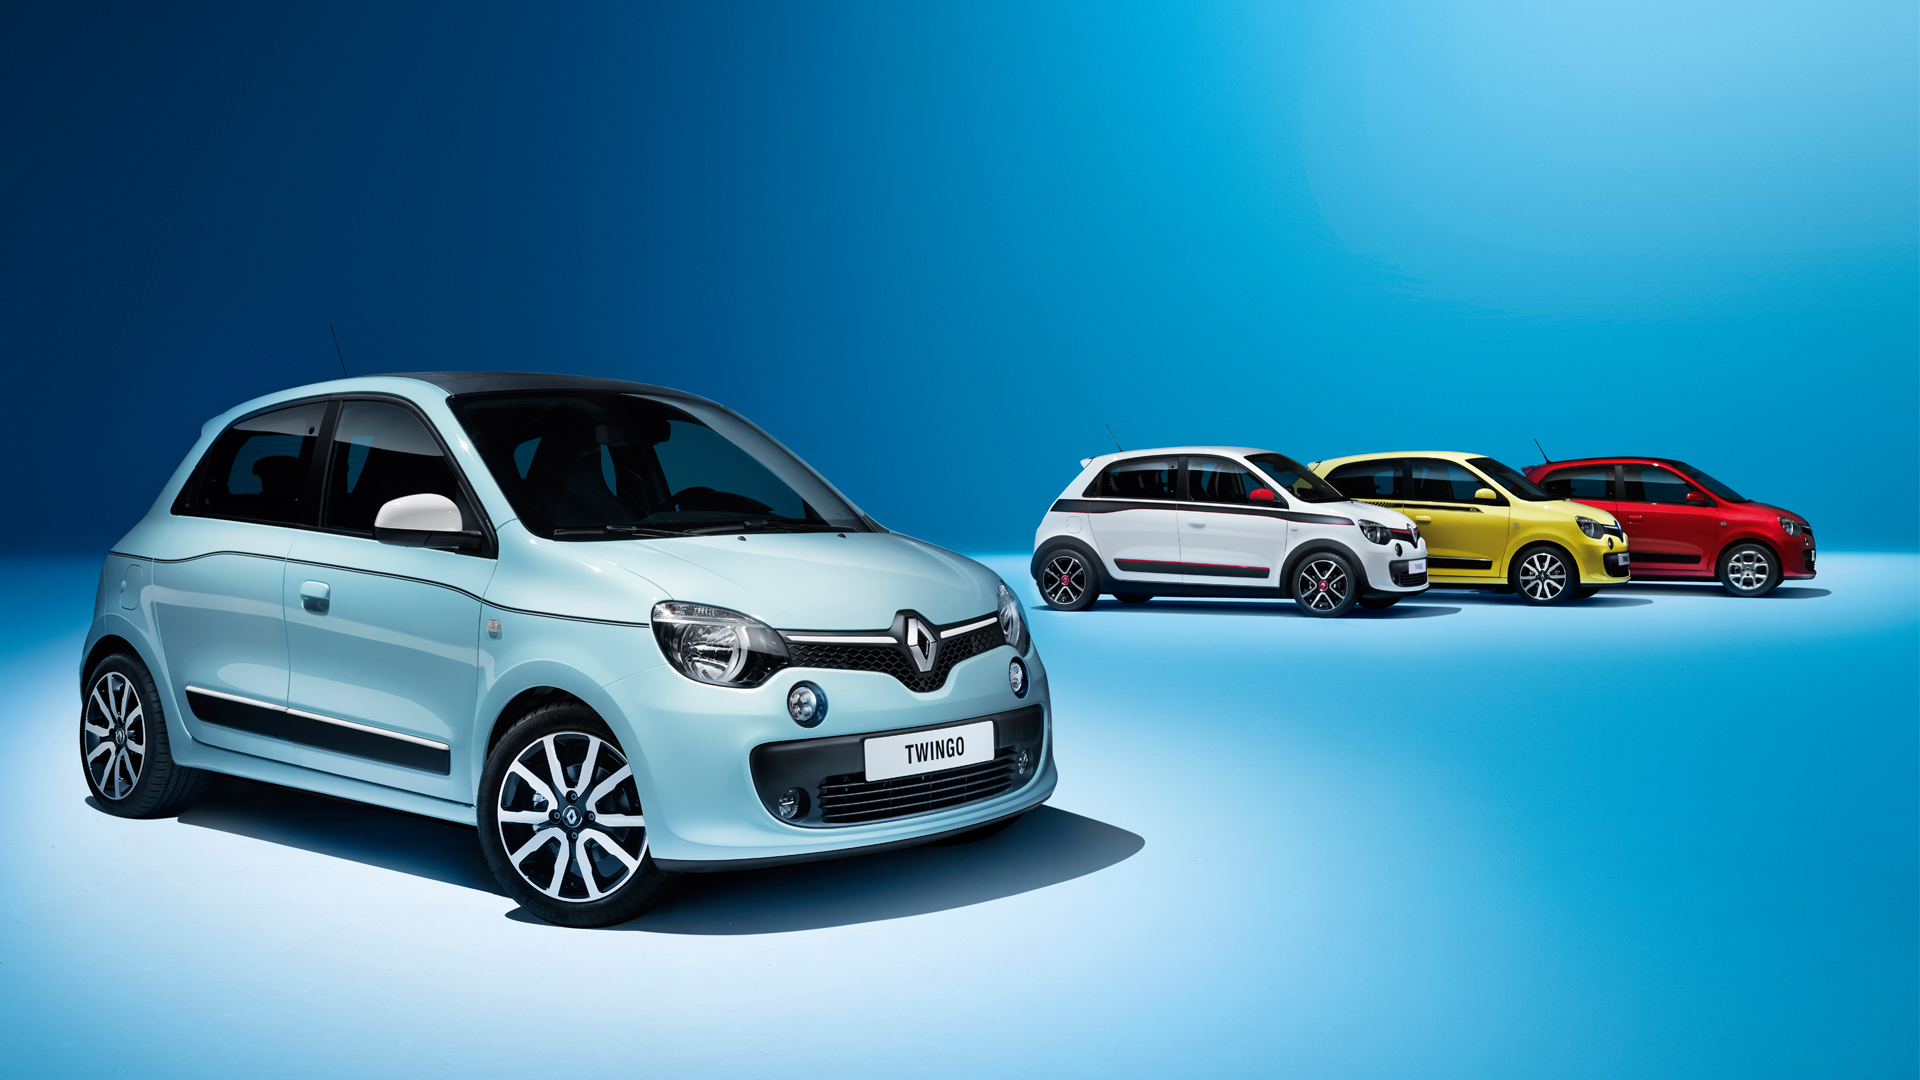 renault-nouvelle-twingo-b07-rotary-03